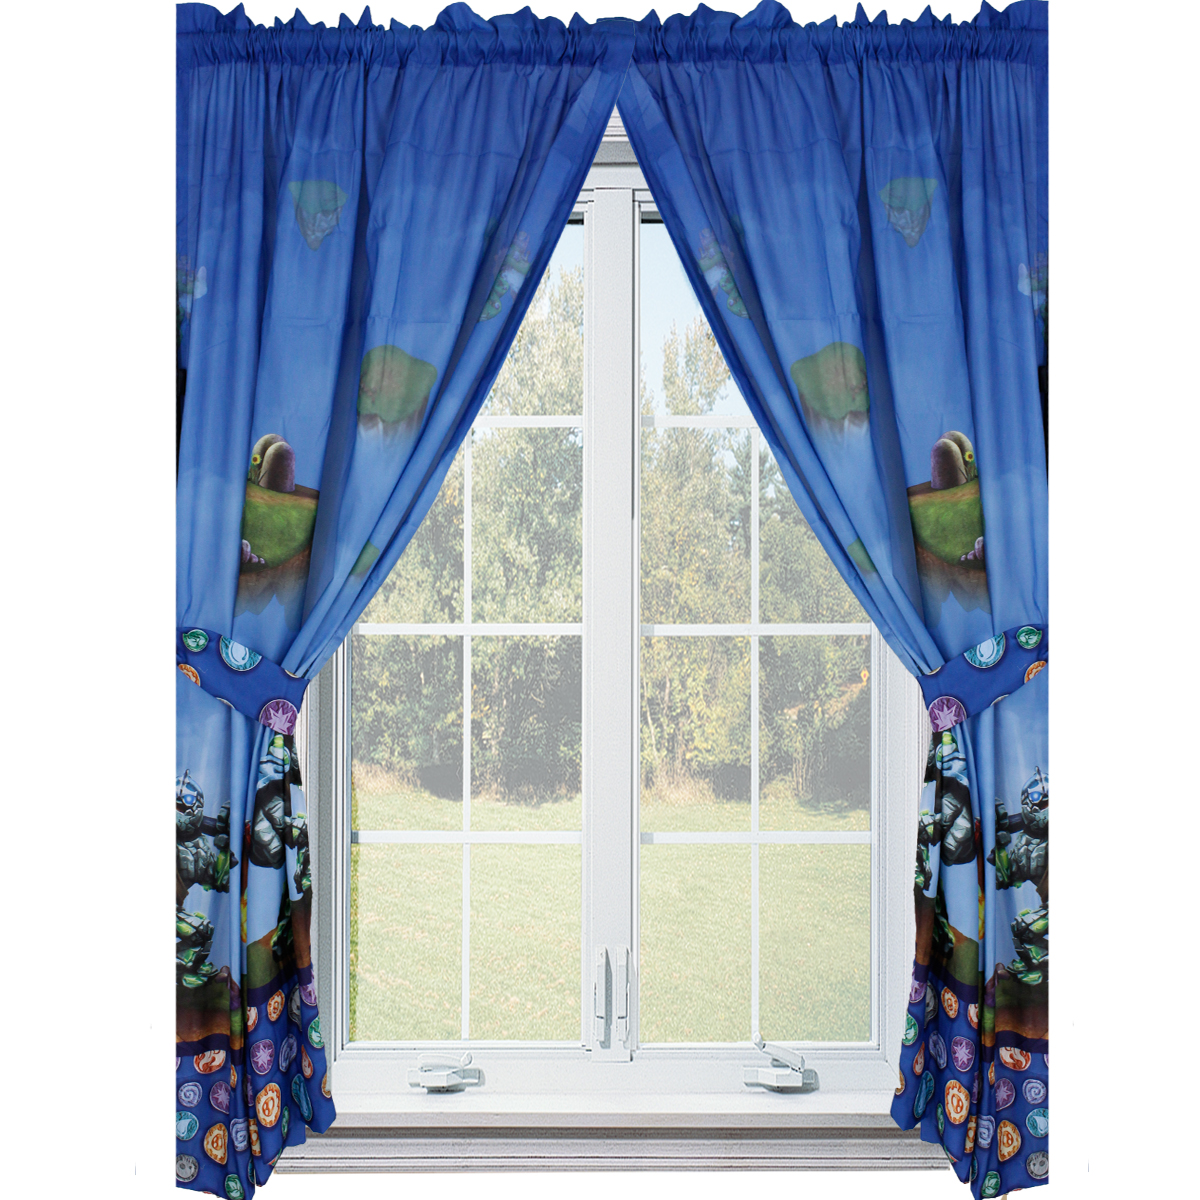 Skylanders Giants Curtain Set - 4pc Spyro Sky Friends Window Panels and Tie-Backs CU361W